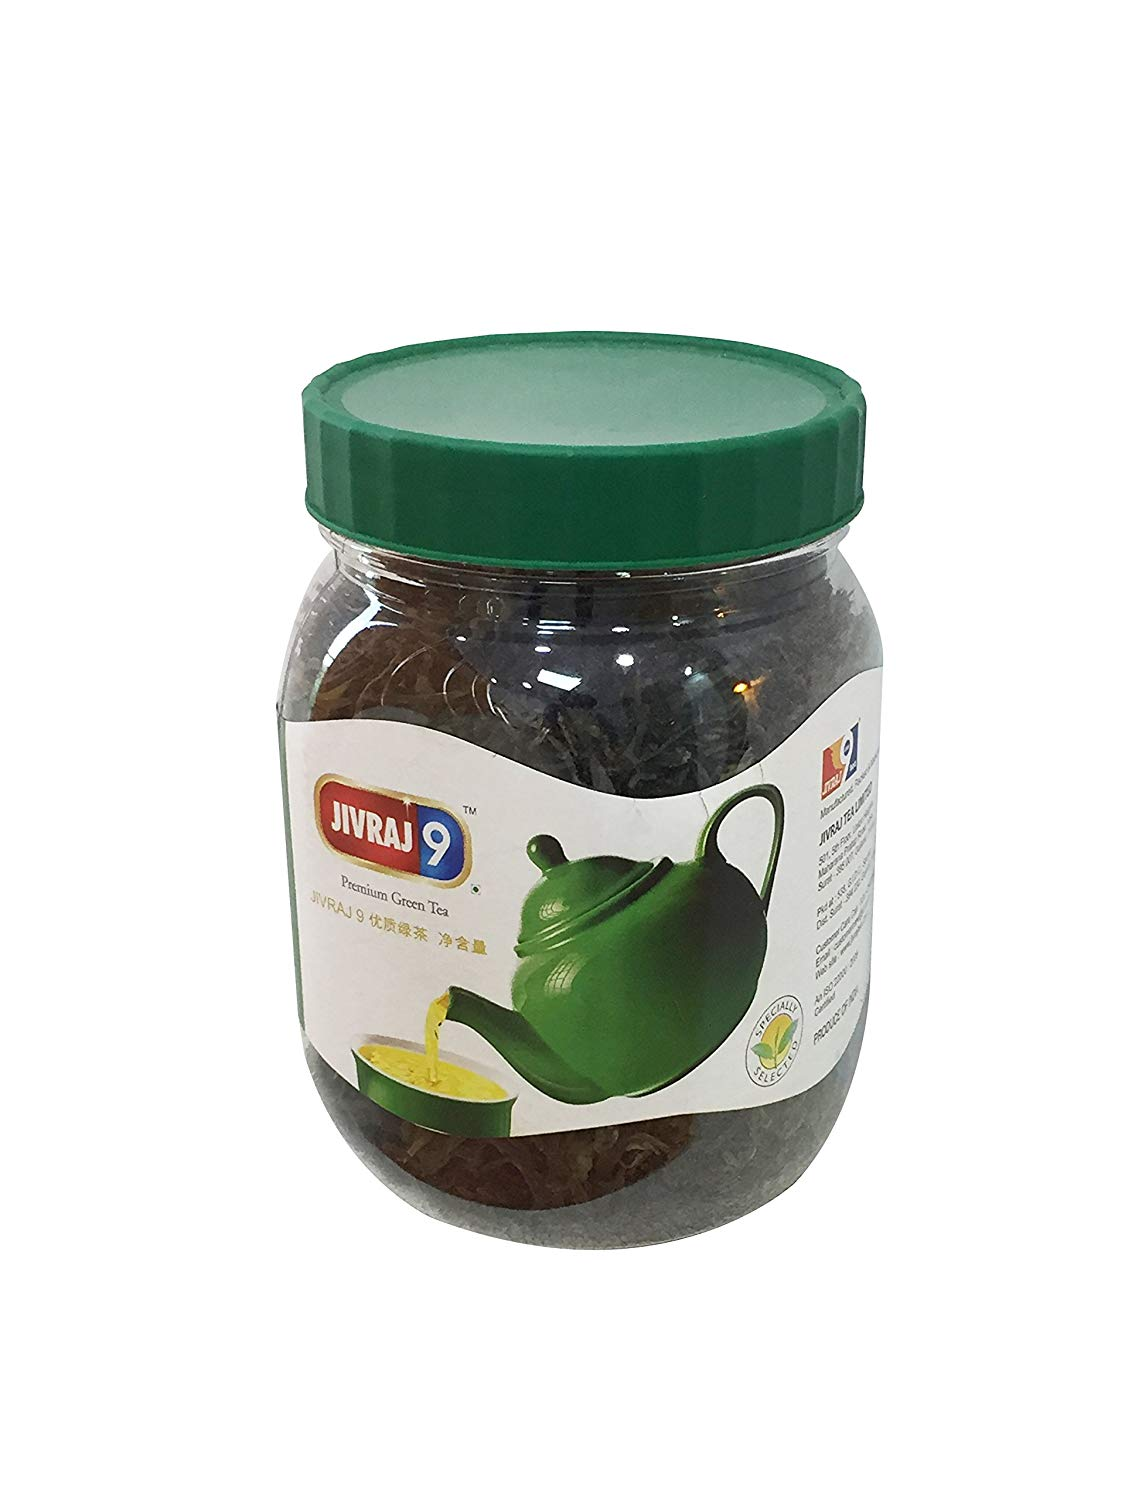 Jivraj 9 Premium Green Tea Jar